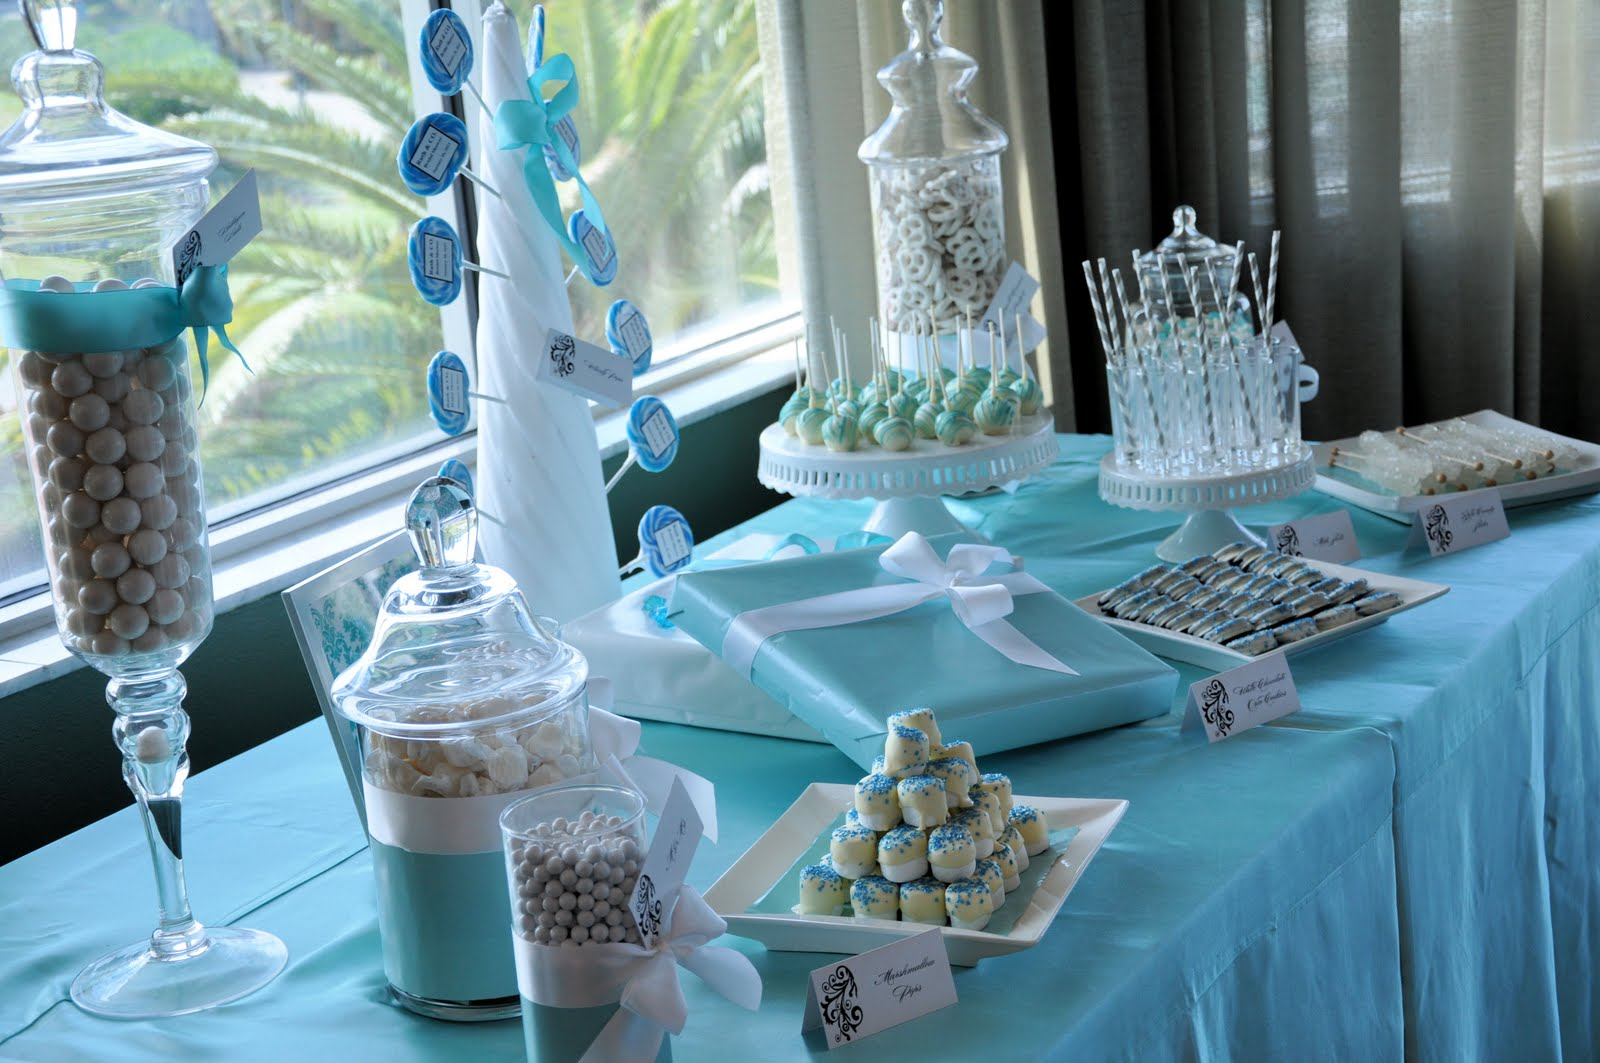 Chic Designs N Fabulous Events: Tiffany & Co. Bridal Shower